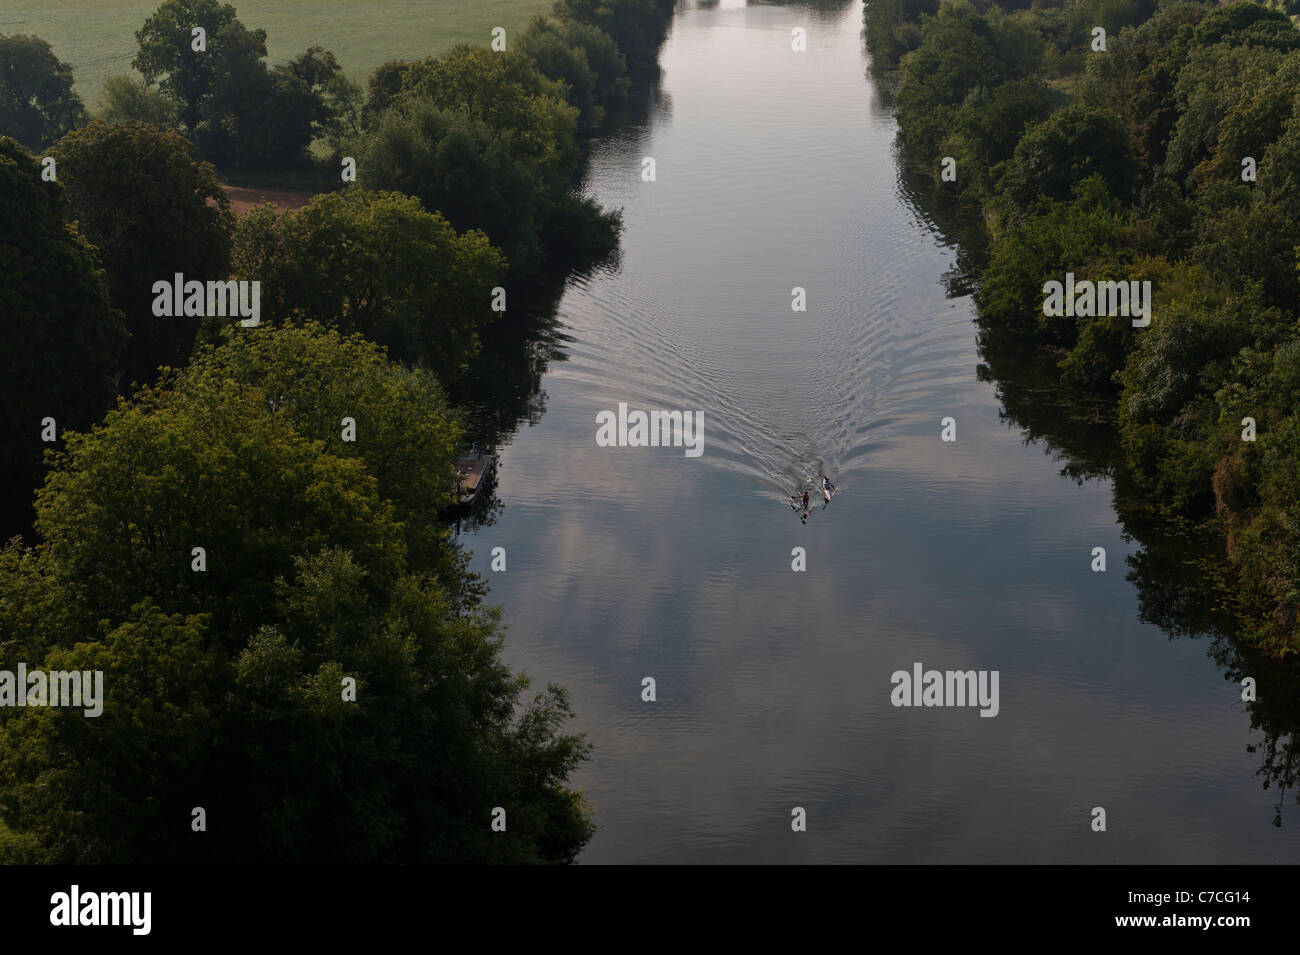 Rowers on the River Thames, aerial view, near Henley, Berkshire, UK - Stock Image